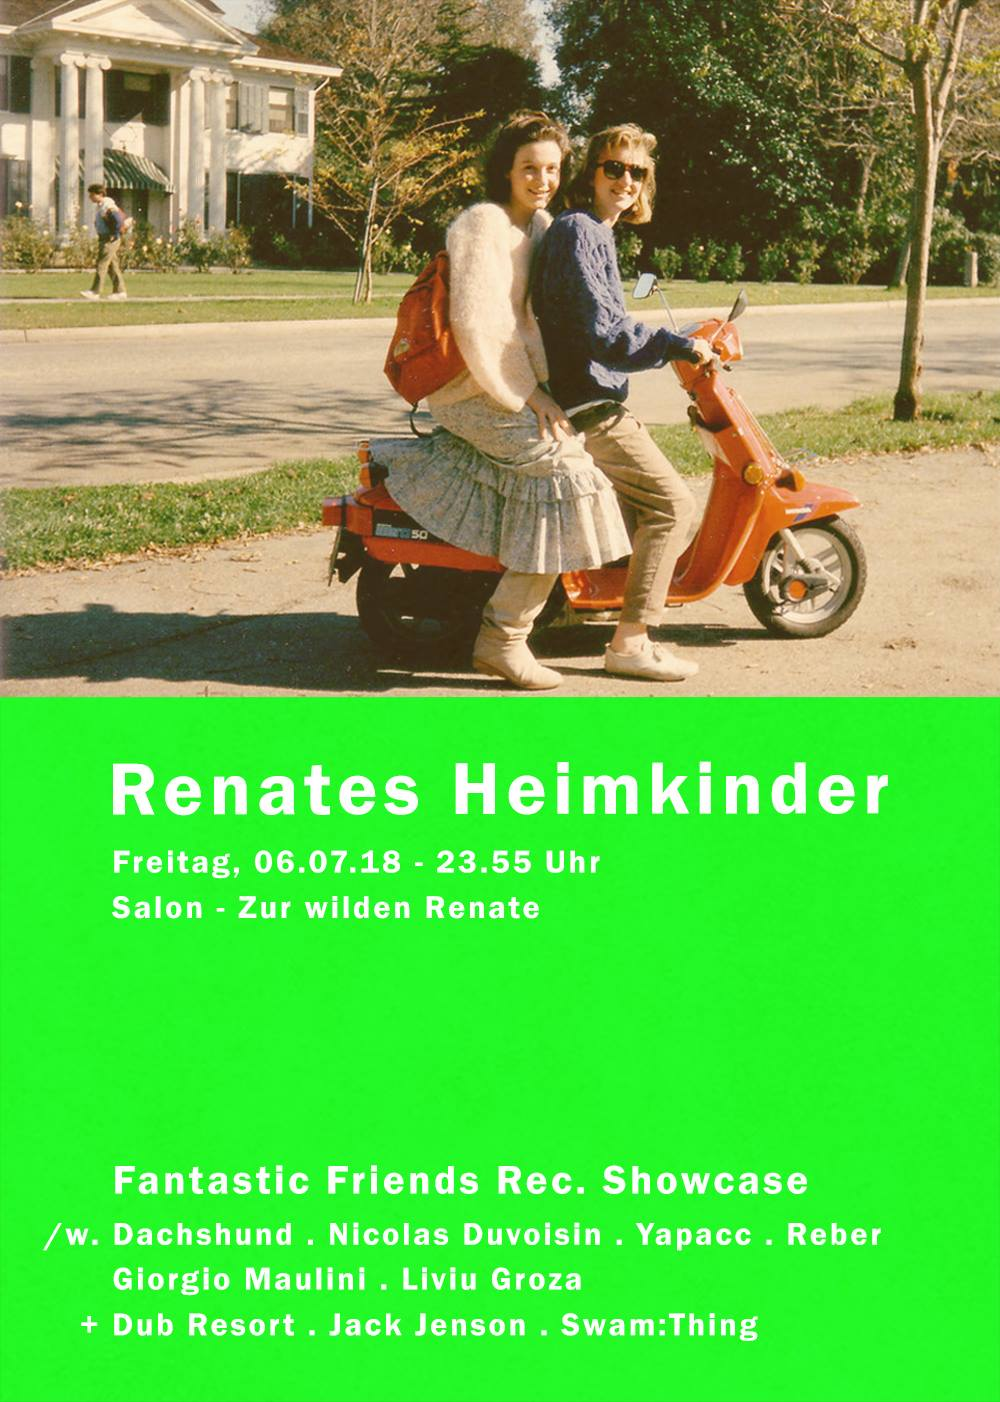 RENATES HEIMKINDER meet FANTASTIC FRIENDS